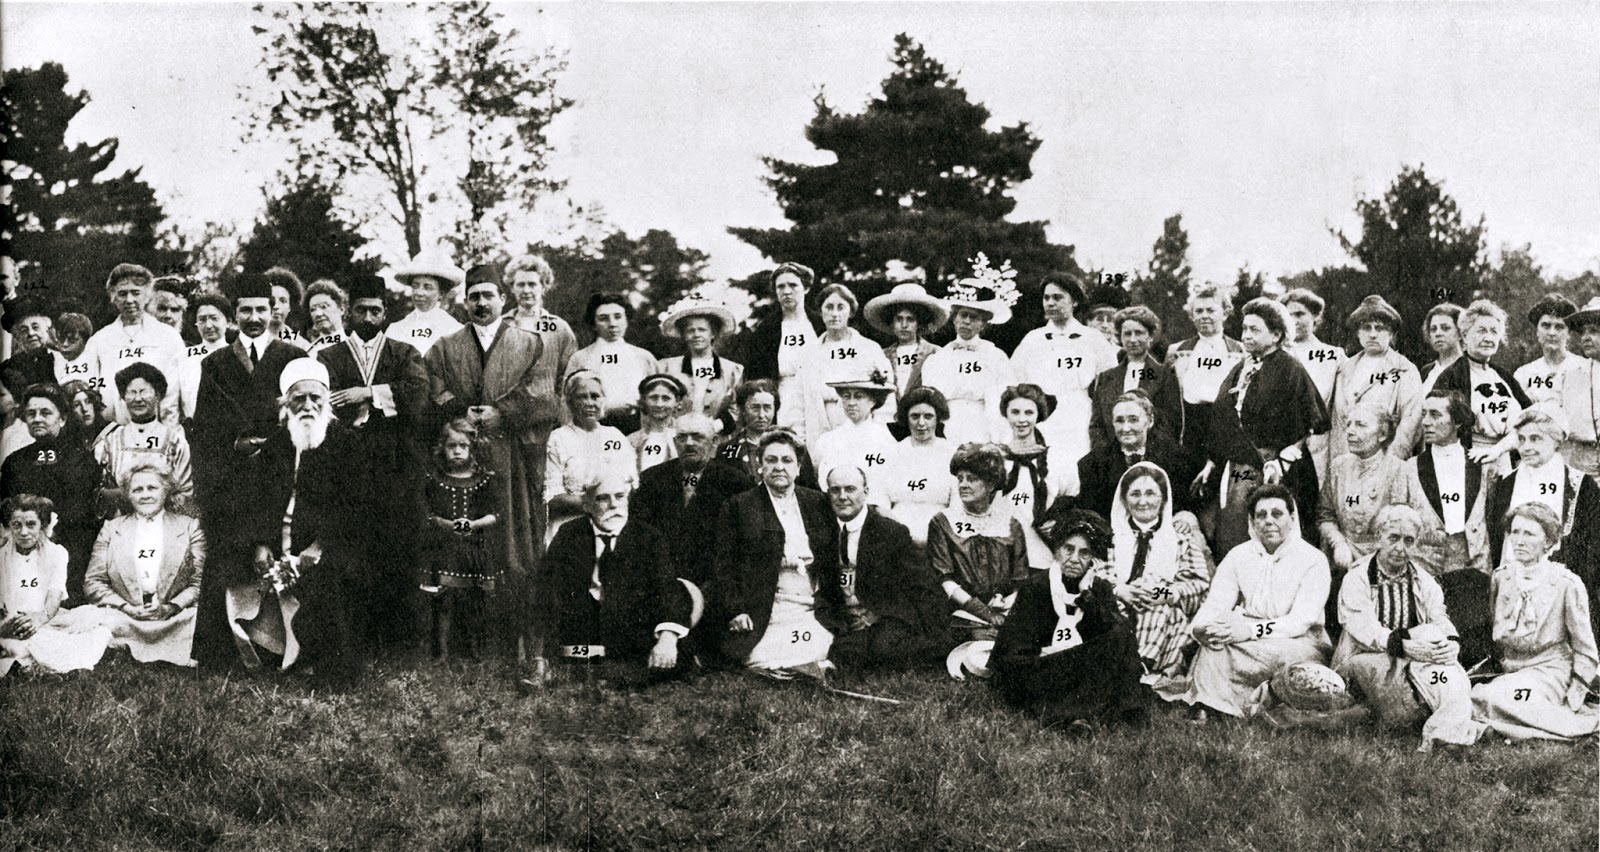 Caption: In 1912, Abdul-Baha, leader of the Baha'i faith, visited Greenacre, a religious community in Maine founded by Sarah Farmer., Credit: Wikimedia Commons